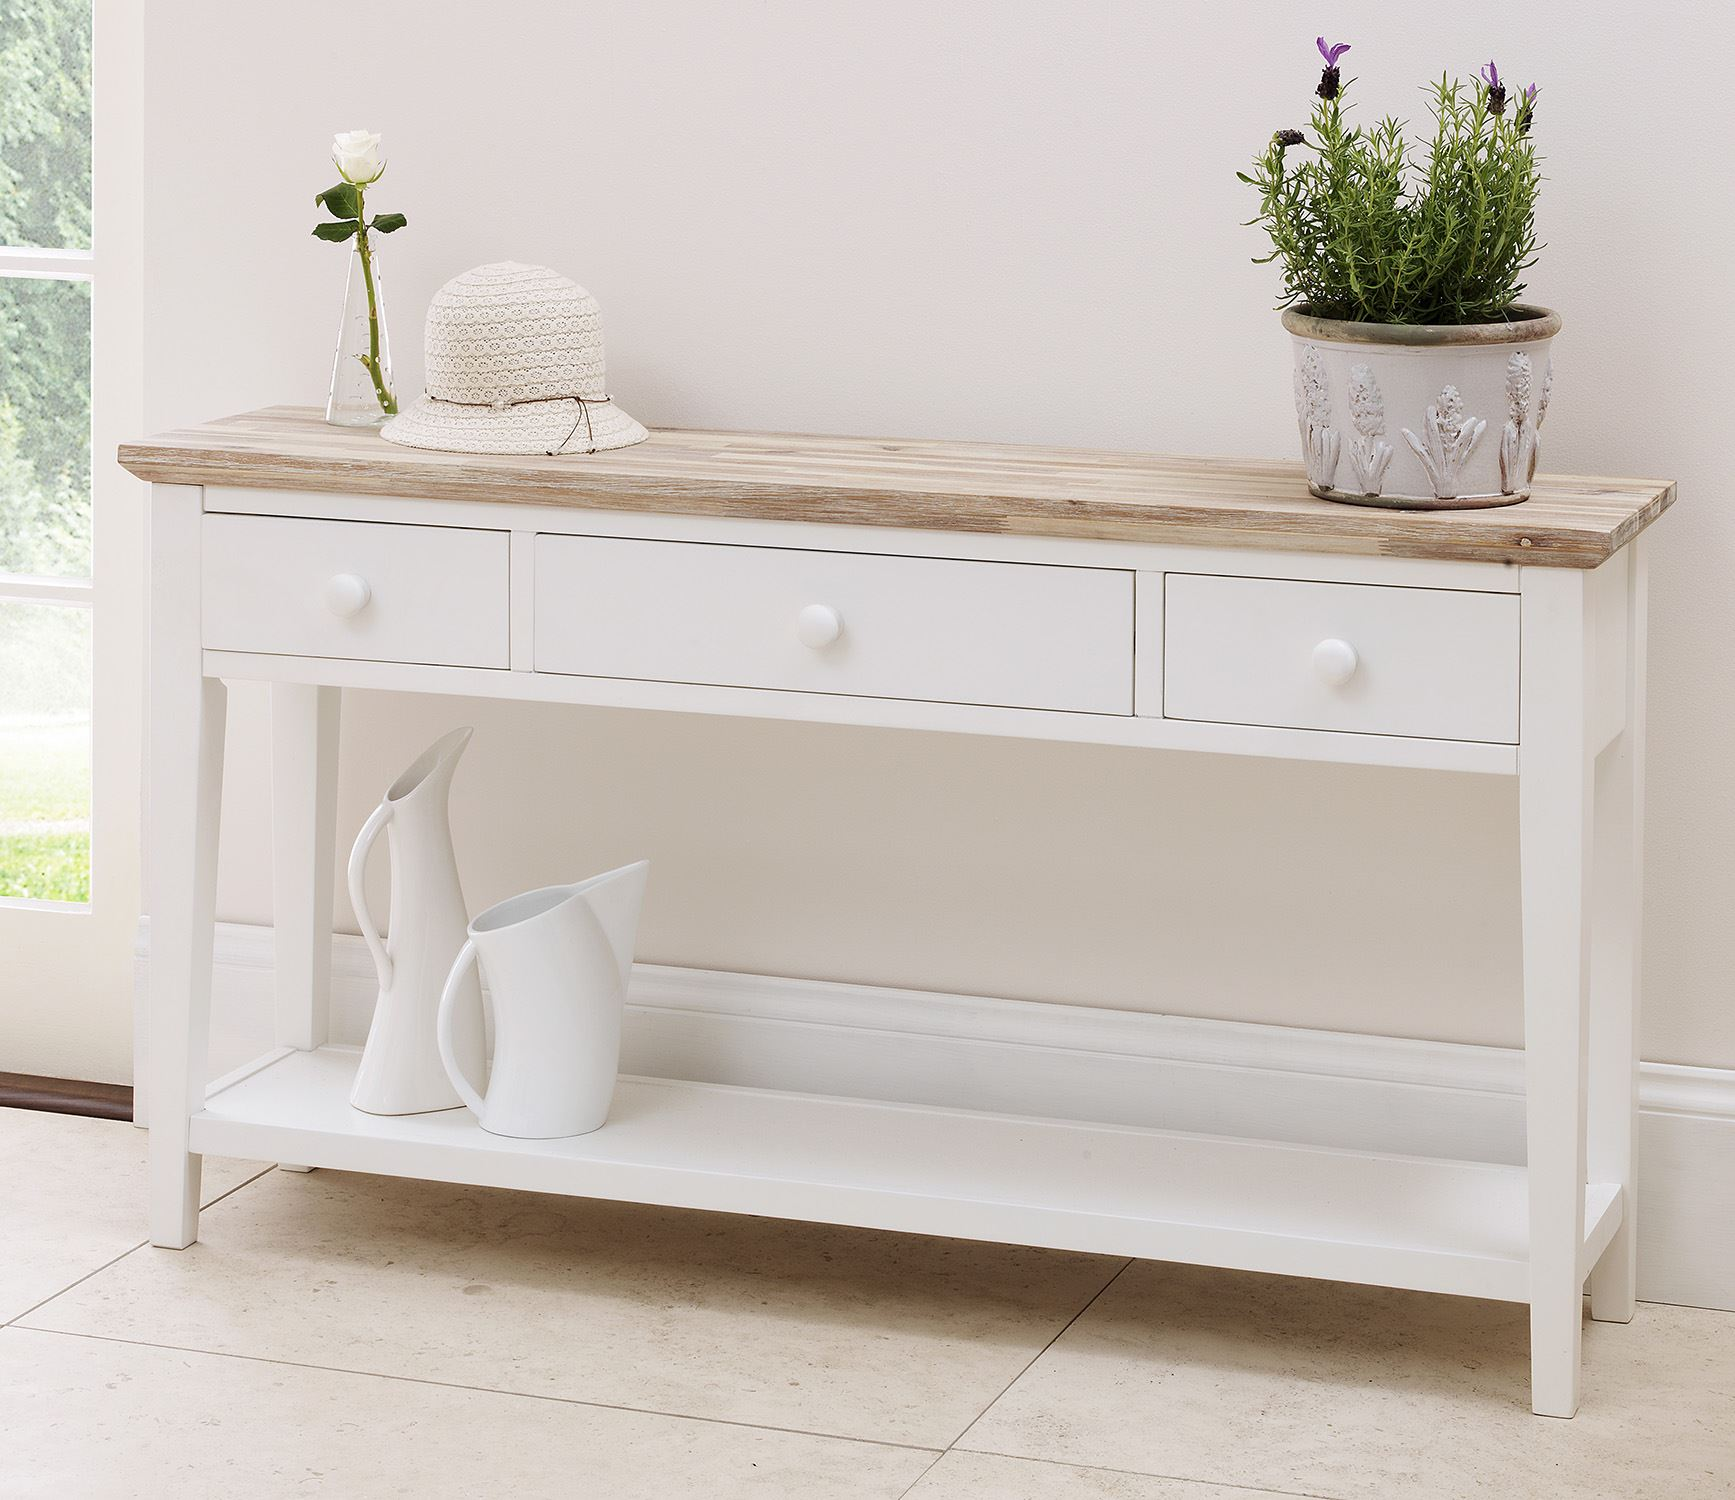 Pleasant Details About Florence White Console Table Stunning Kitchen Console Table 3 Drawers Bargain Interior Design Ideas Oxytryabchikinfo